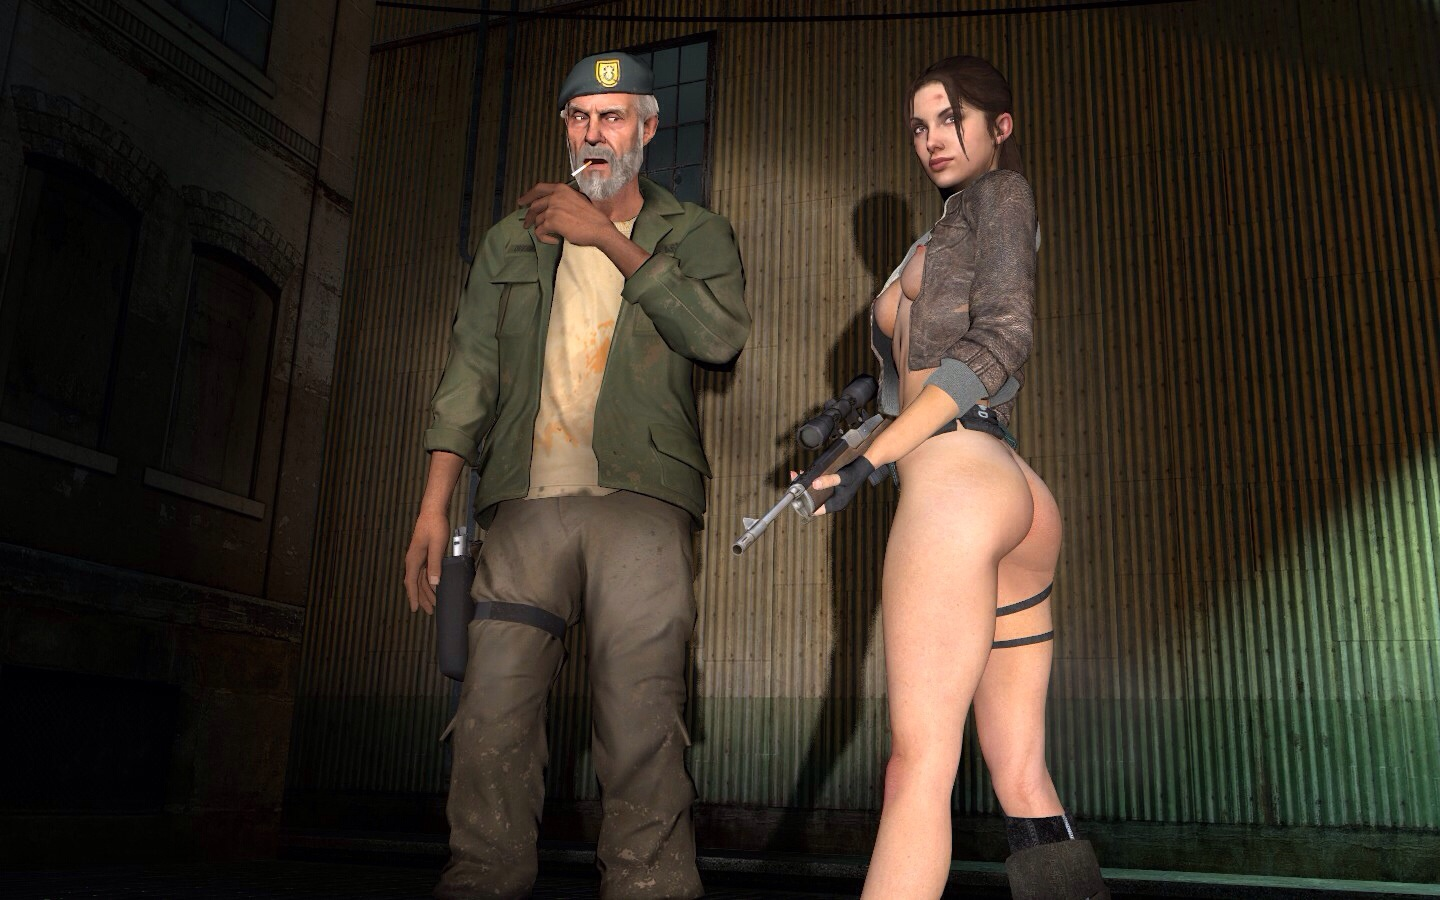 Nude zoey left 4 dead 2 sex galleries